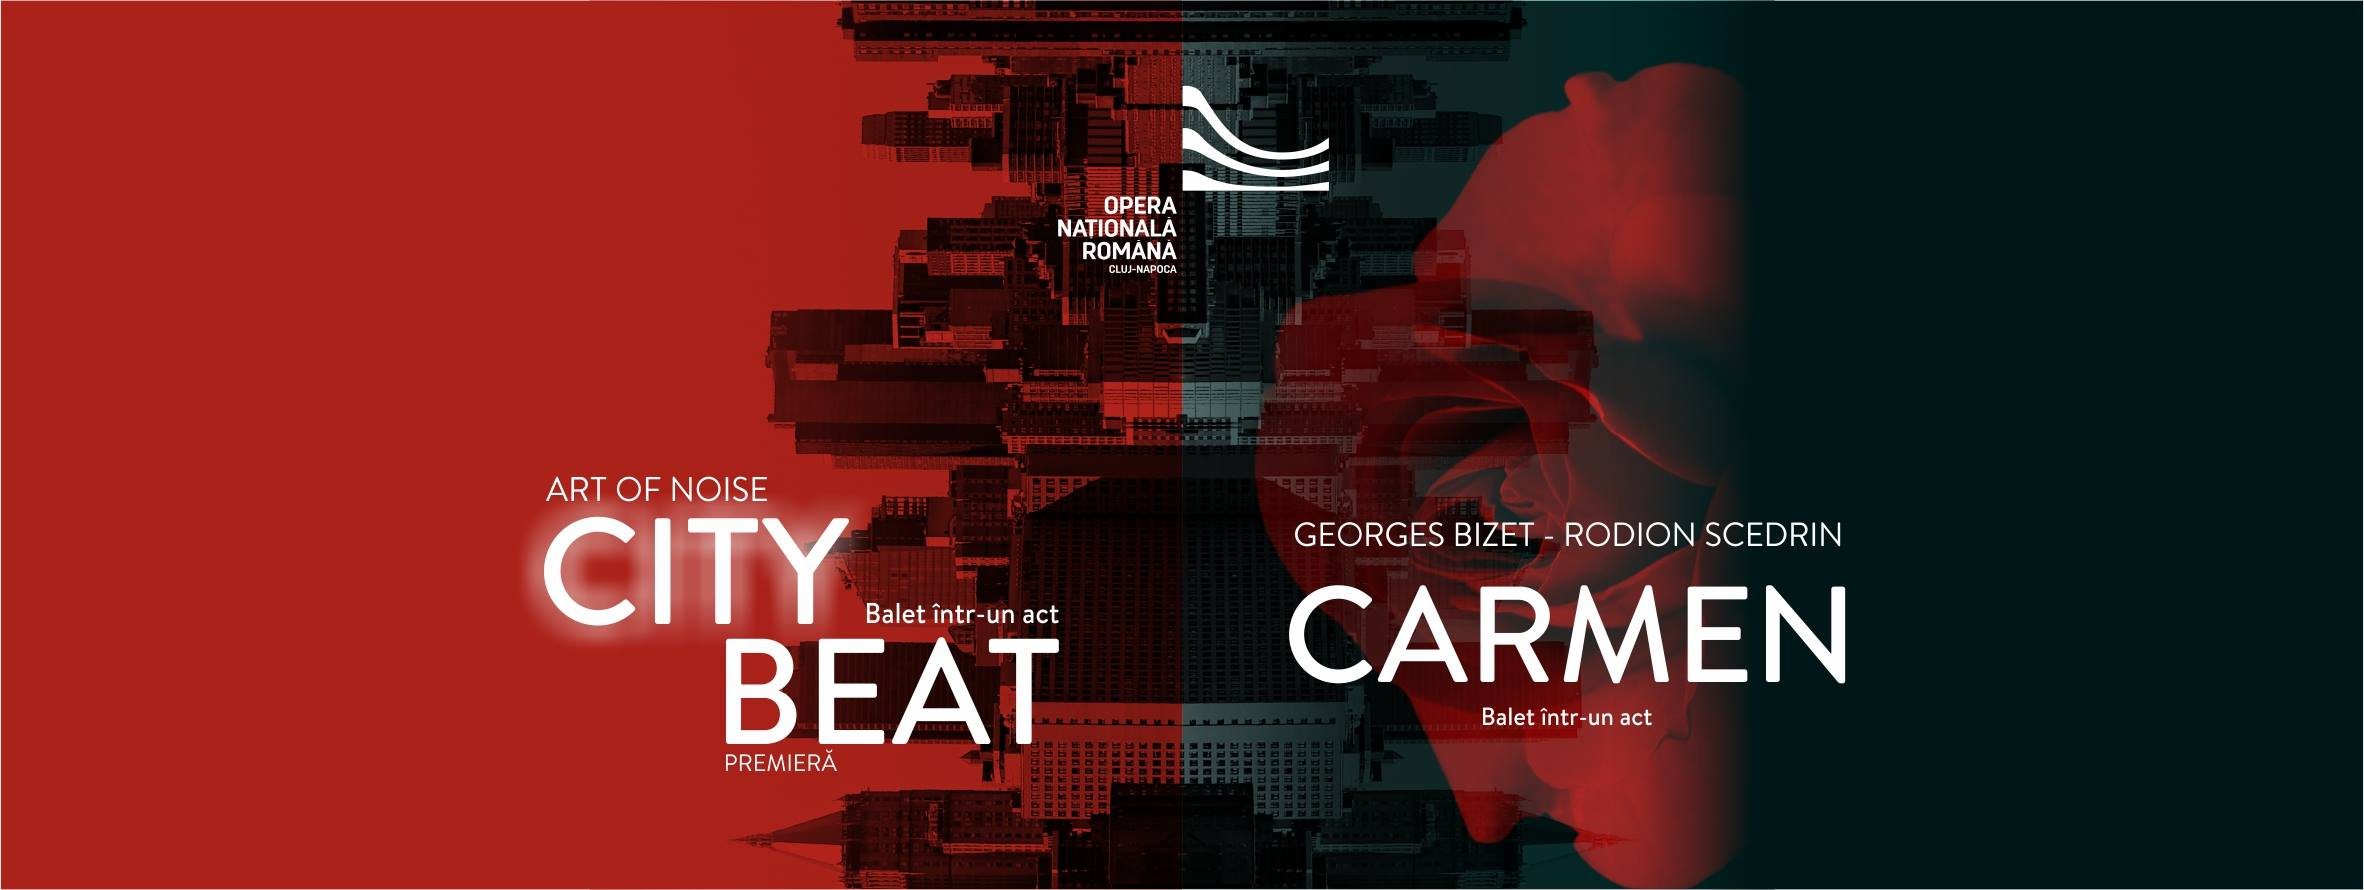 City Beat / Carmen